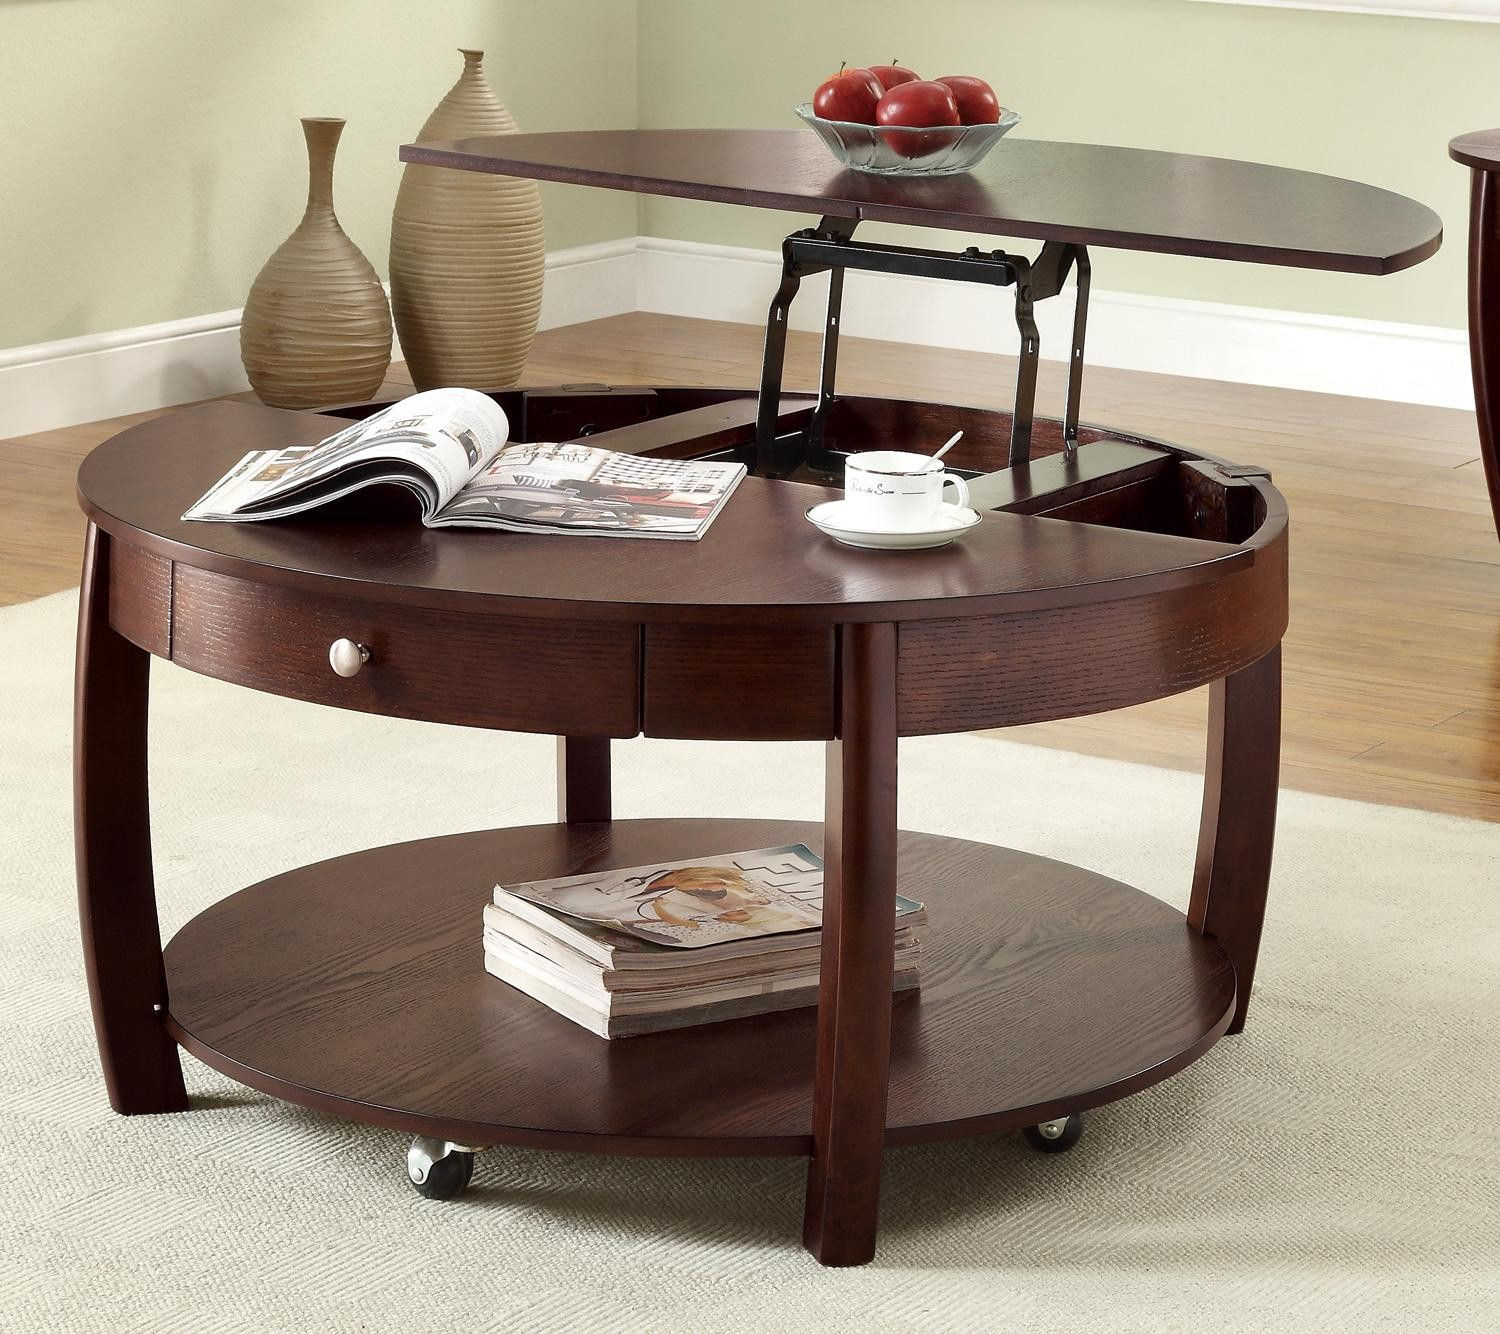 Best ideas about Round Lift Top Coffee Table . Save or Pin Lift Top Coffee Table Ideas and Designs Now.